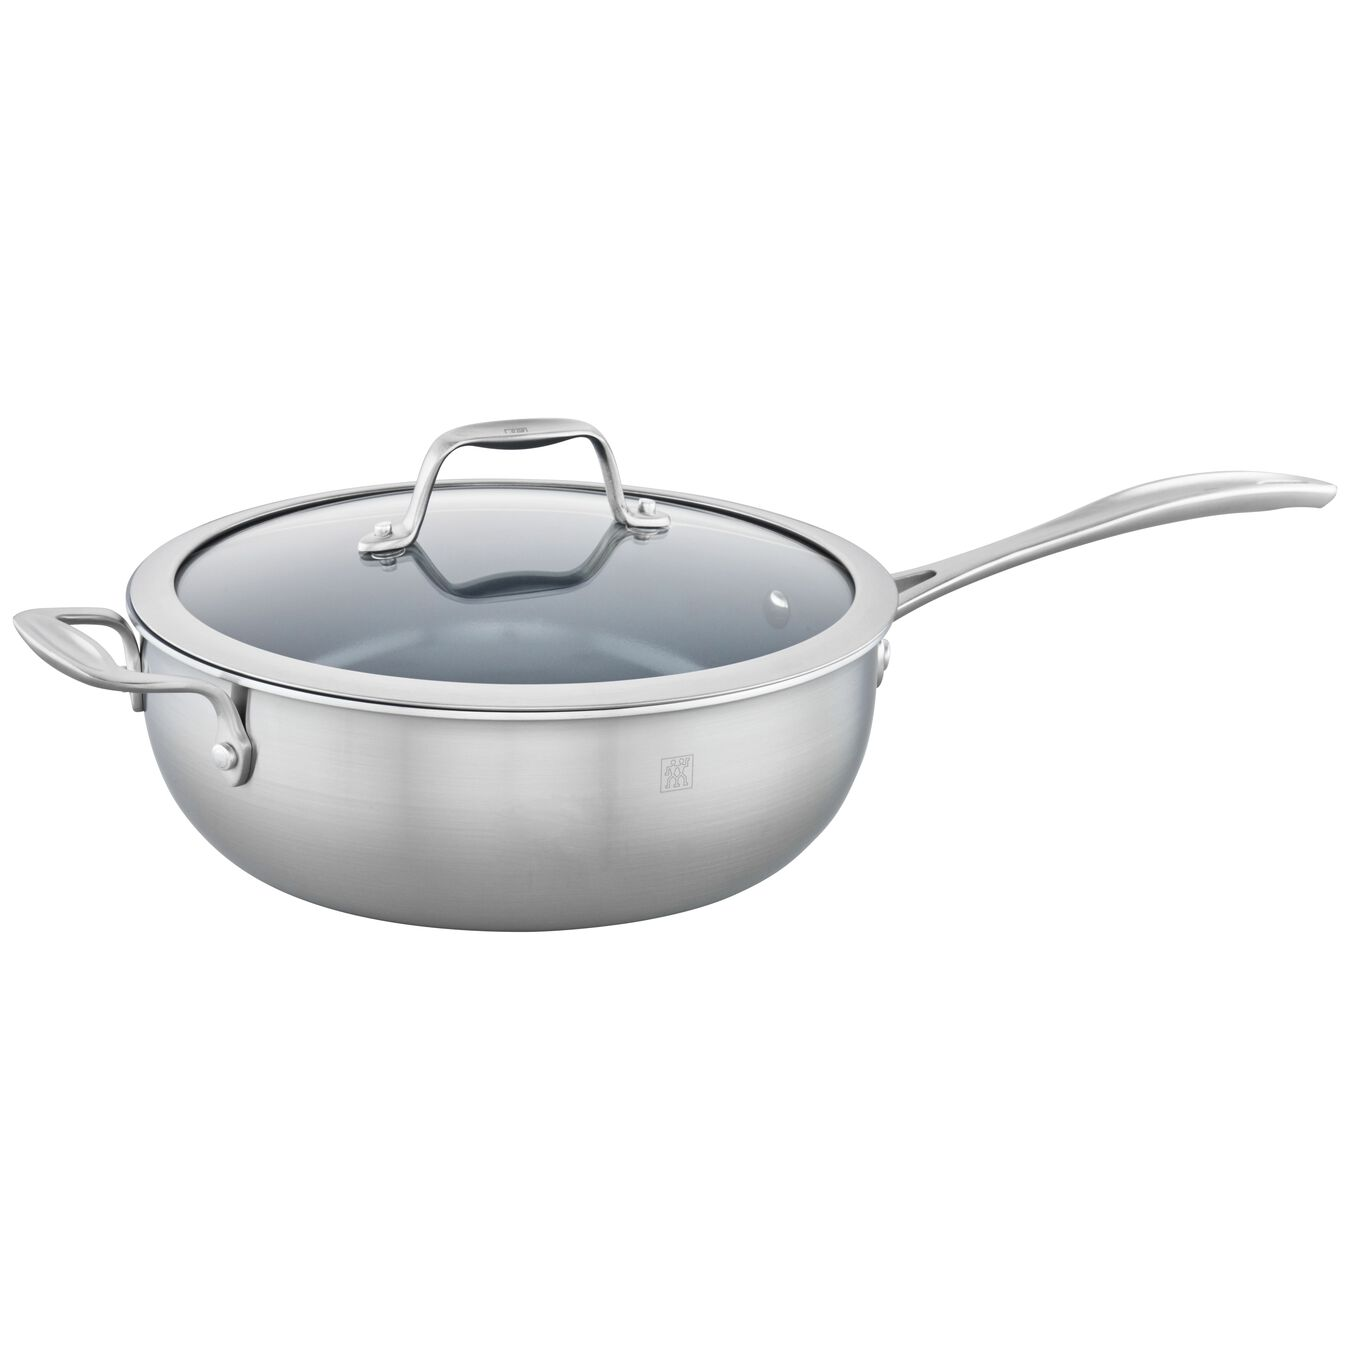 3-ply 4.6-qt Stainless Steel Ceramic Nonstick Perfect Pan,,large 2